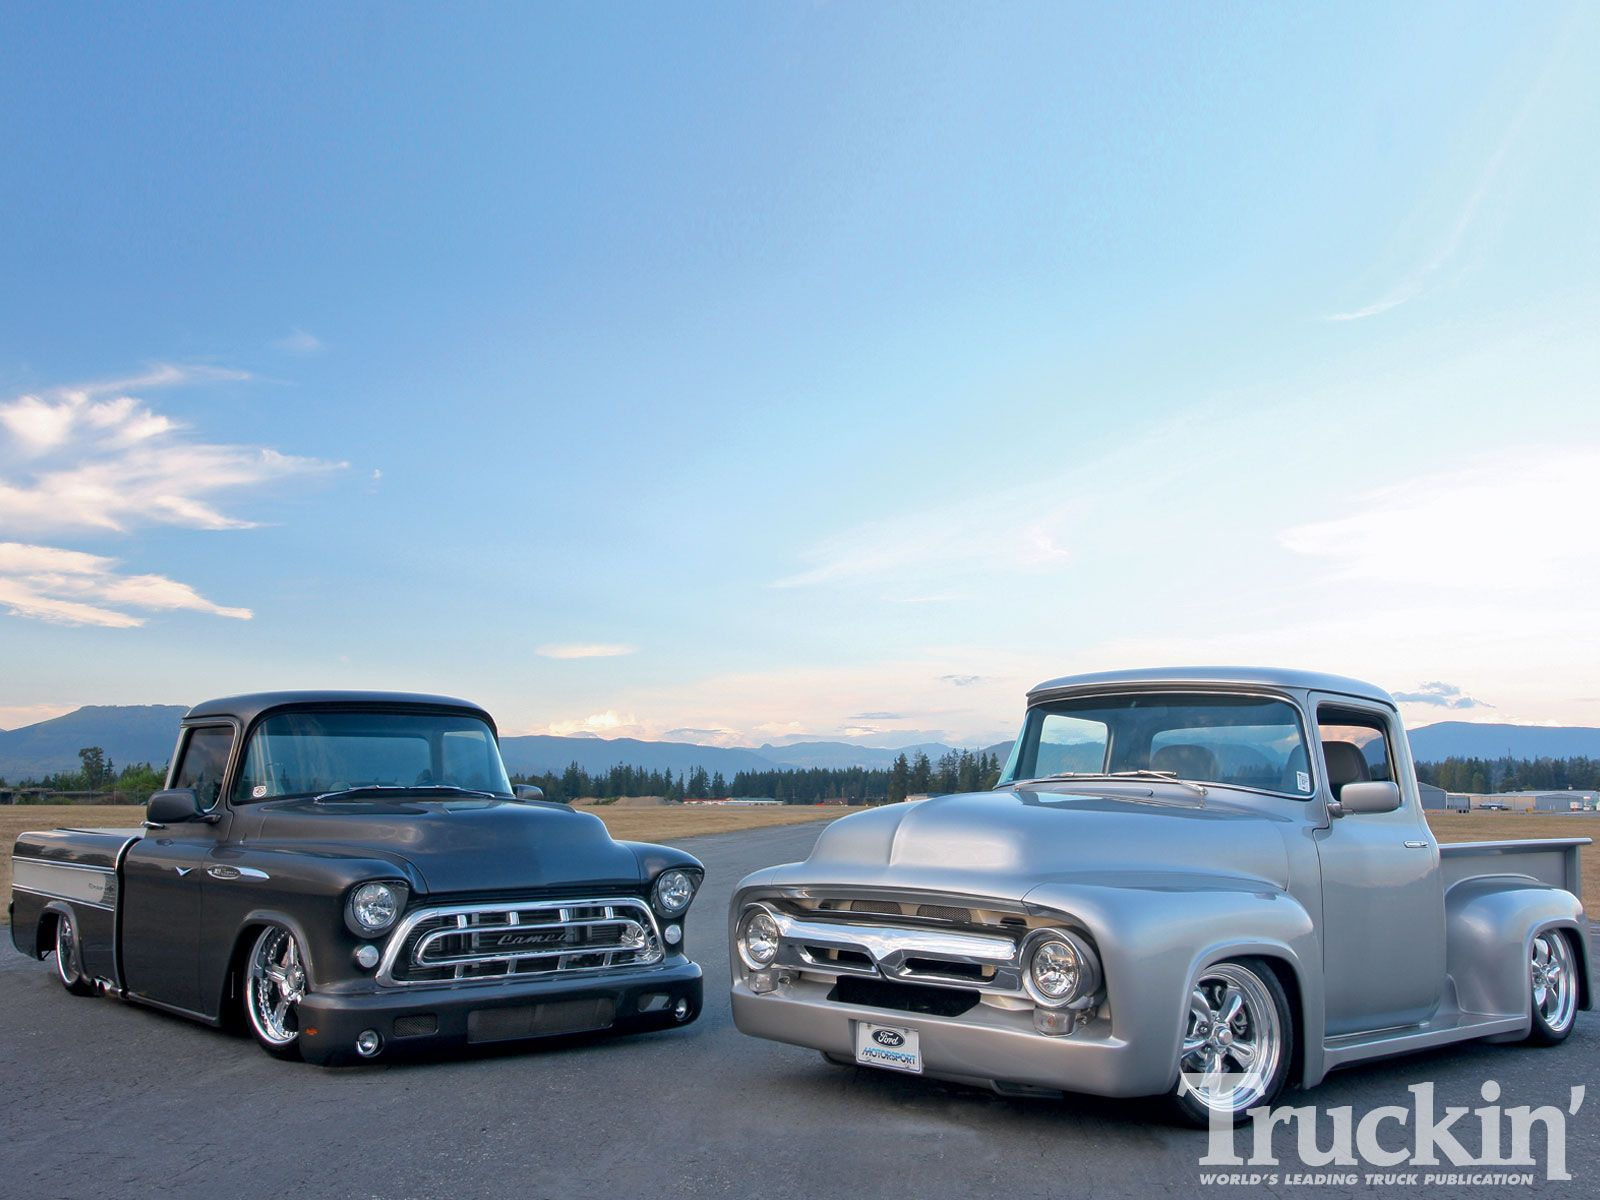 1957 chevy trucks for sale | 1956 Ford F100 1957 Chevy ...1956 Ford F100 Lifted